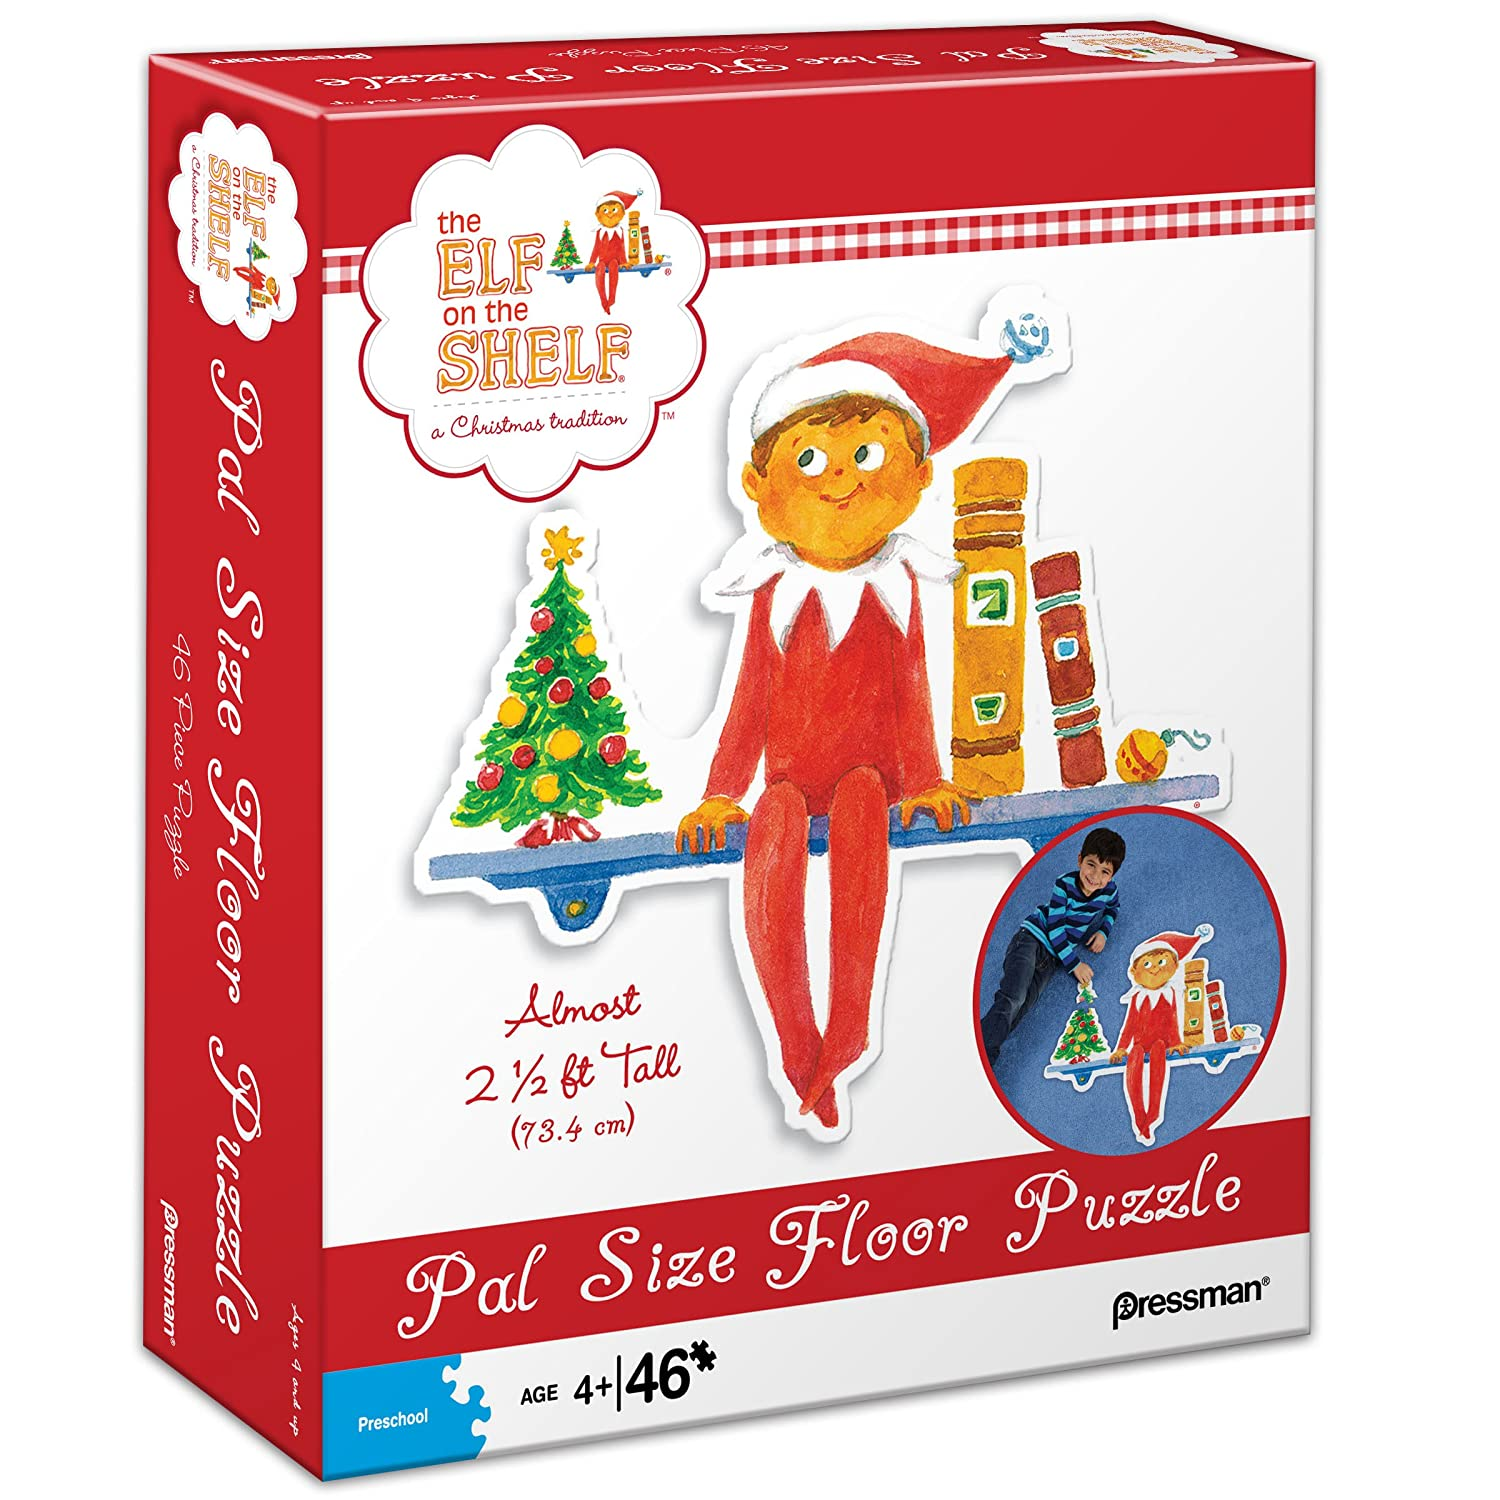 Elf on The Shelf Pal Size Floor Puzzle Ages 4+